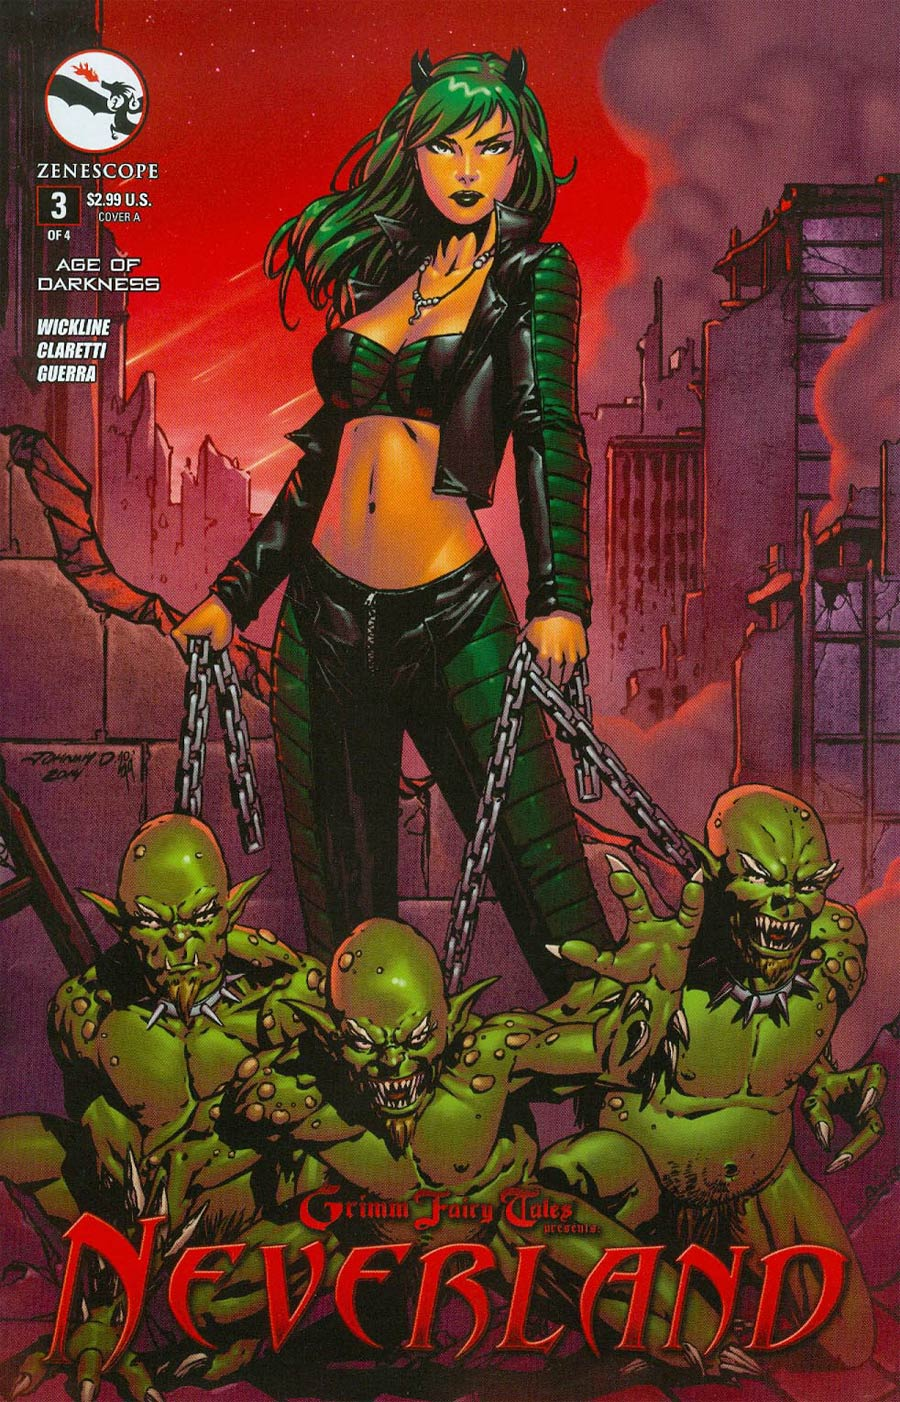 Grimm Fairy Tales Presents Neverland Age Of Darkness #3 Cover A Johnny Desjardins